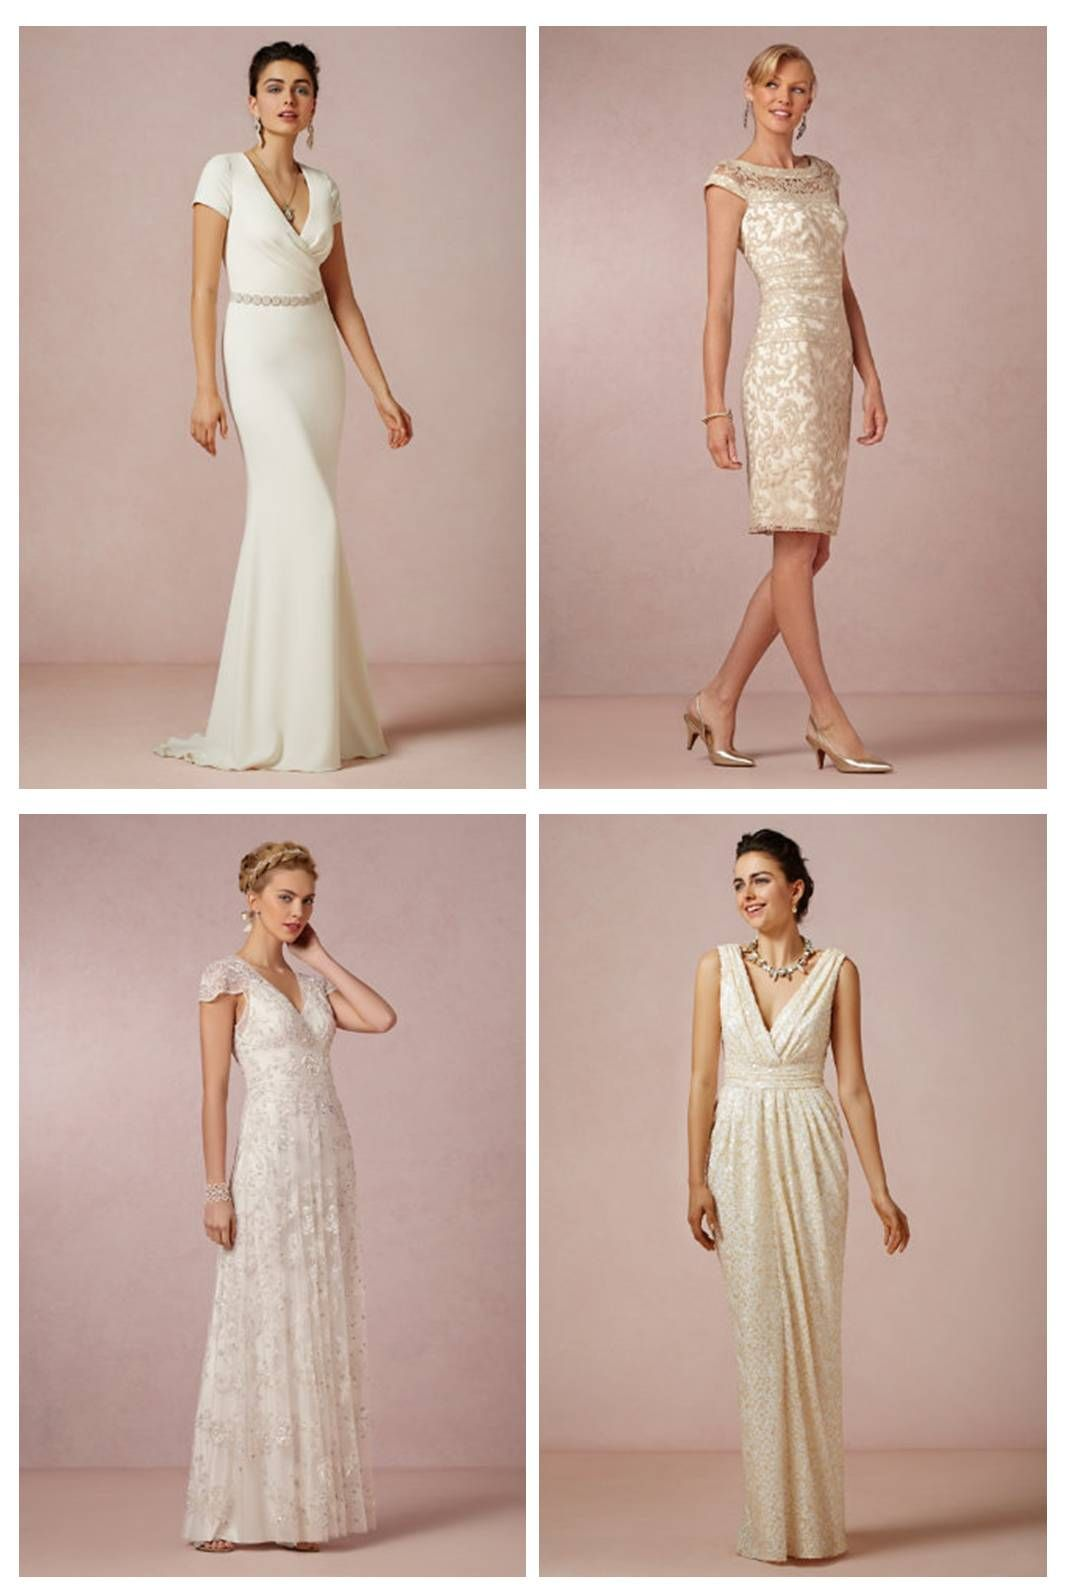 Wedding Dresses for a Second Marriage | Pinterest | Wedding dress ...